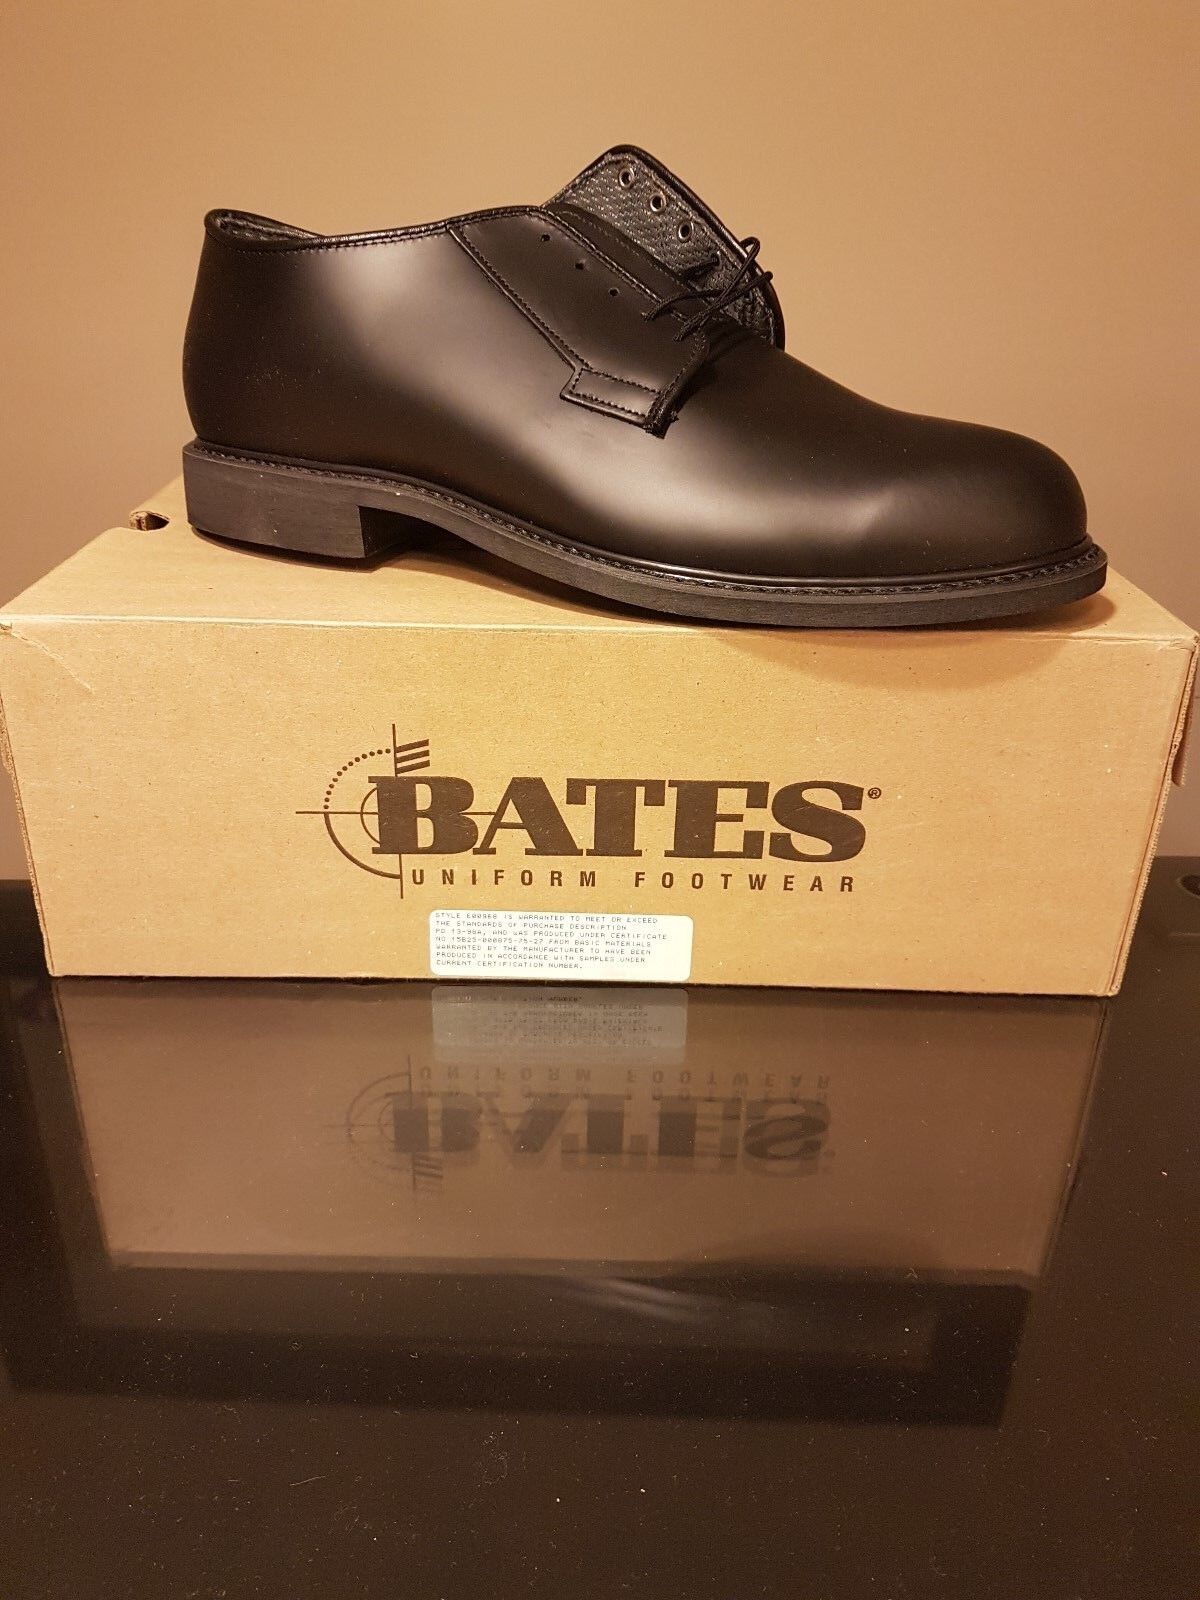 Bates Men's LEATHER OXFORD Black shoes E00968 Made in the USA - Size 13 E (W)